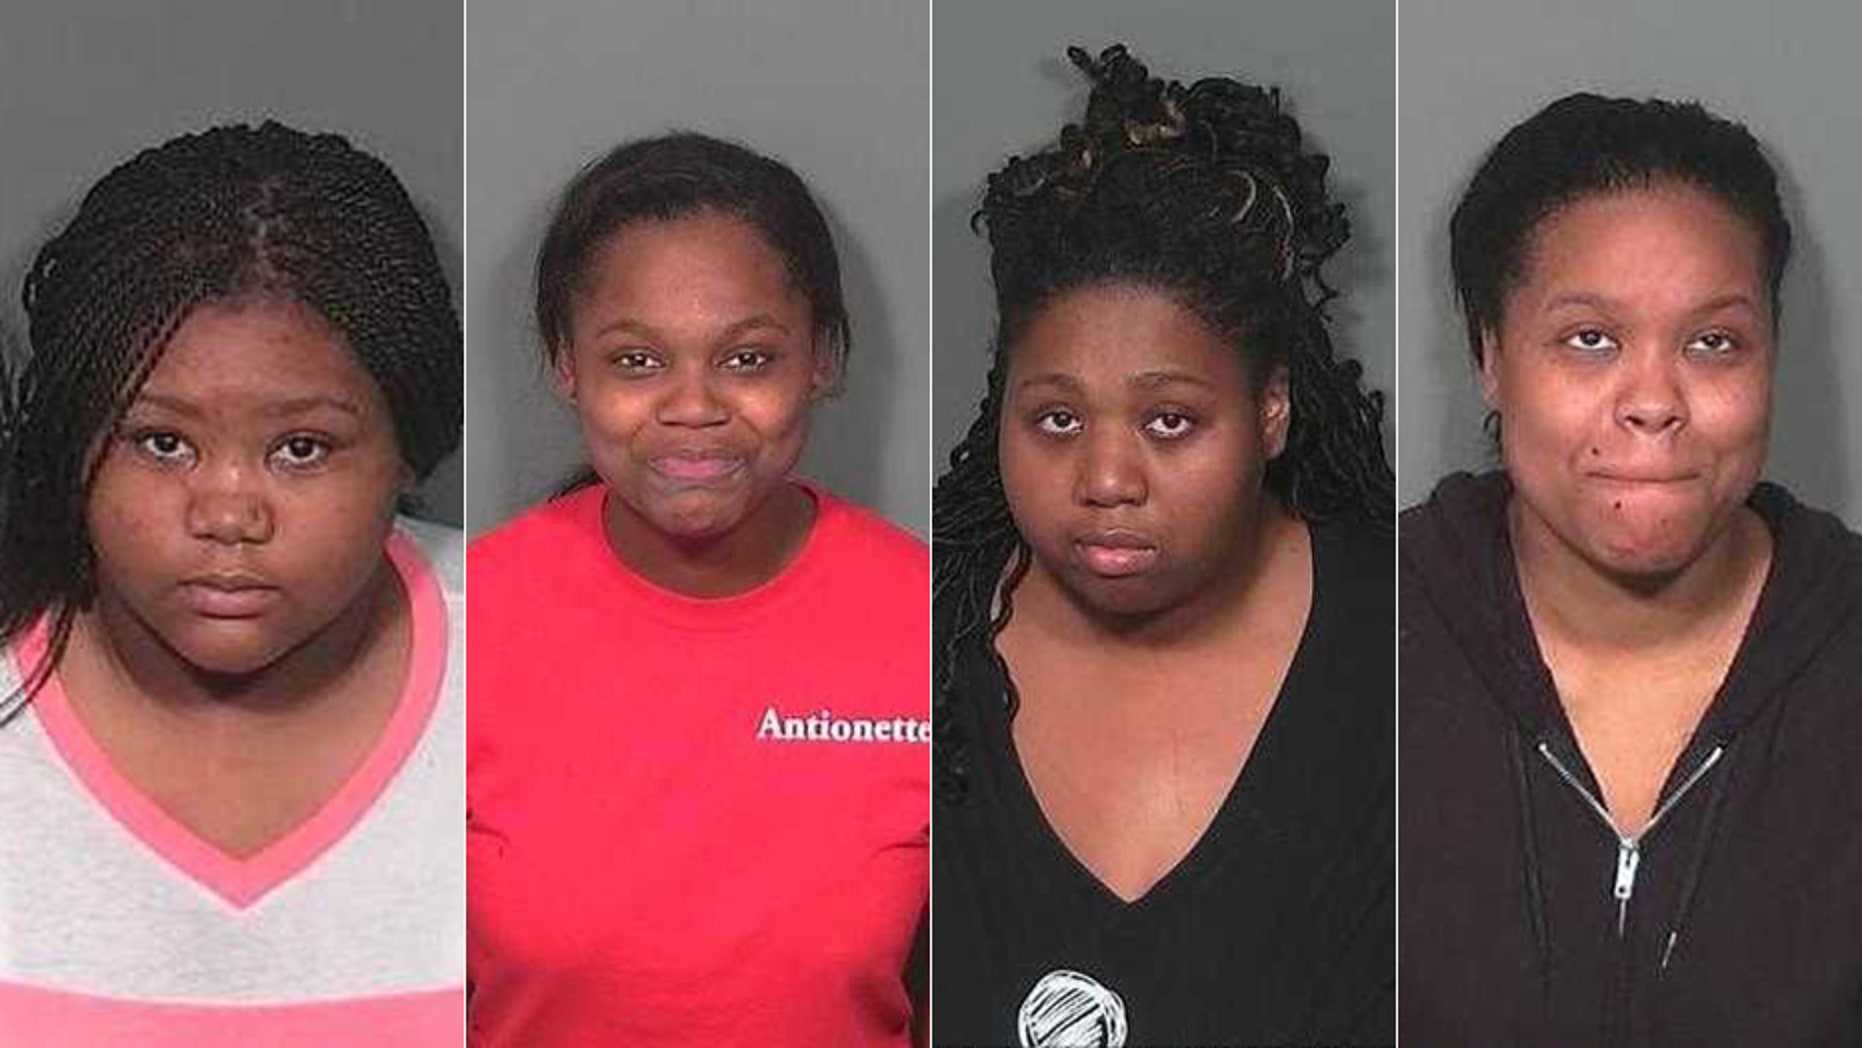 Police arrested, from left to right: Seanice Warren, Alexis Neal, Majara Walker and Morgan Walker, in connection with the Walmart fight.